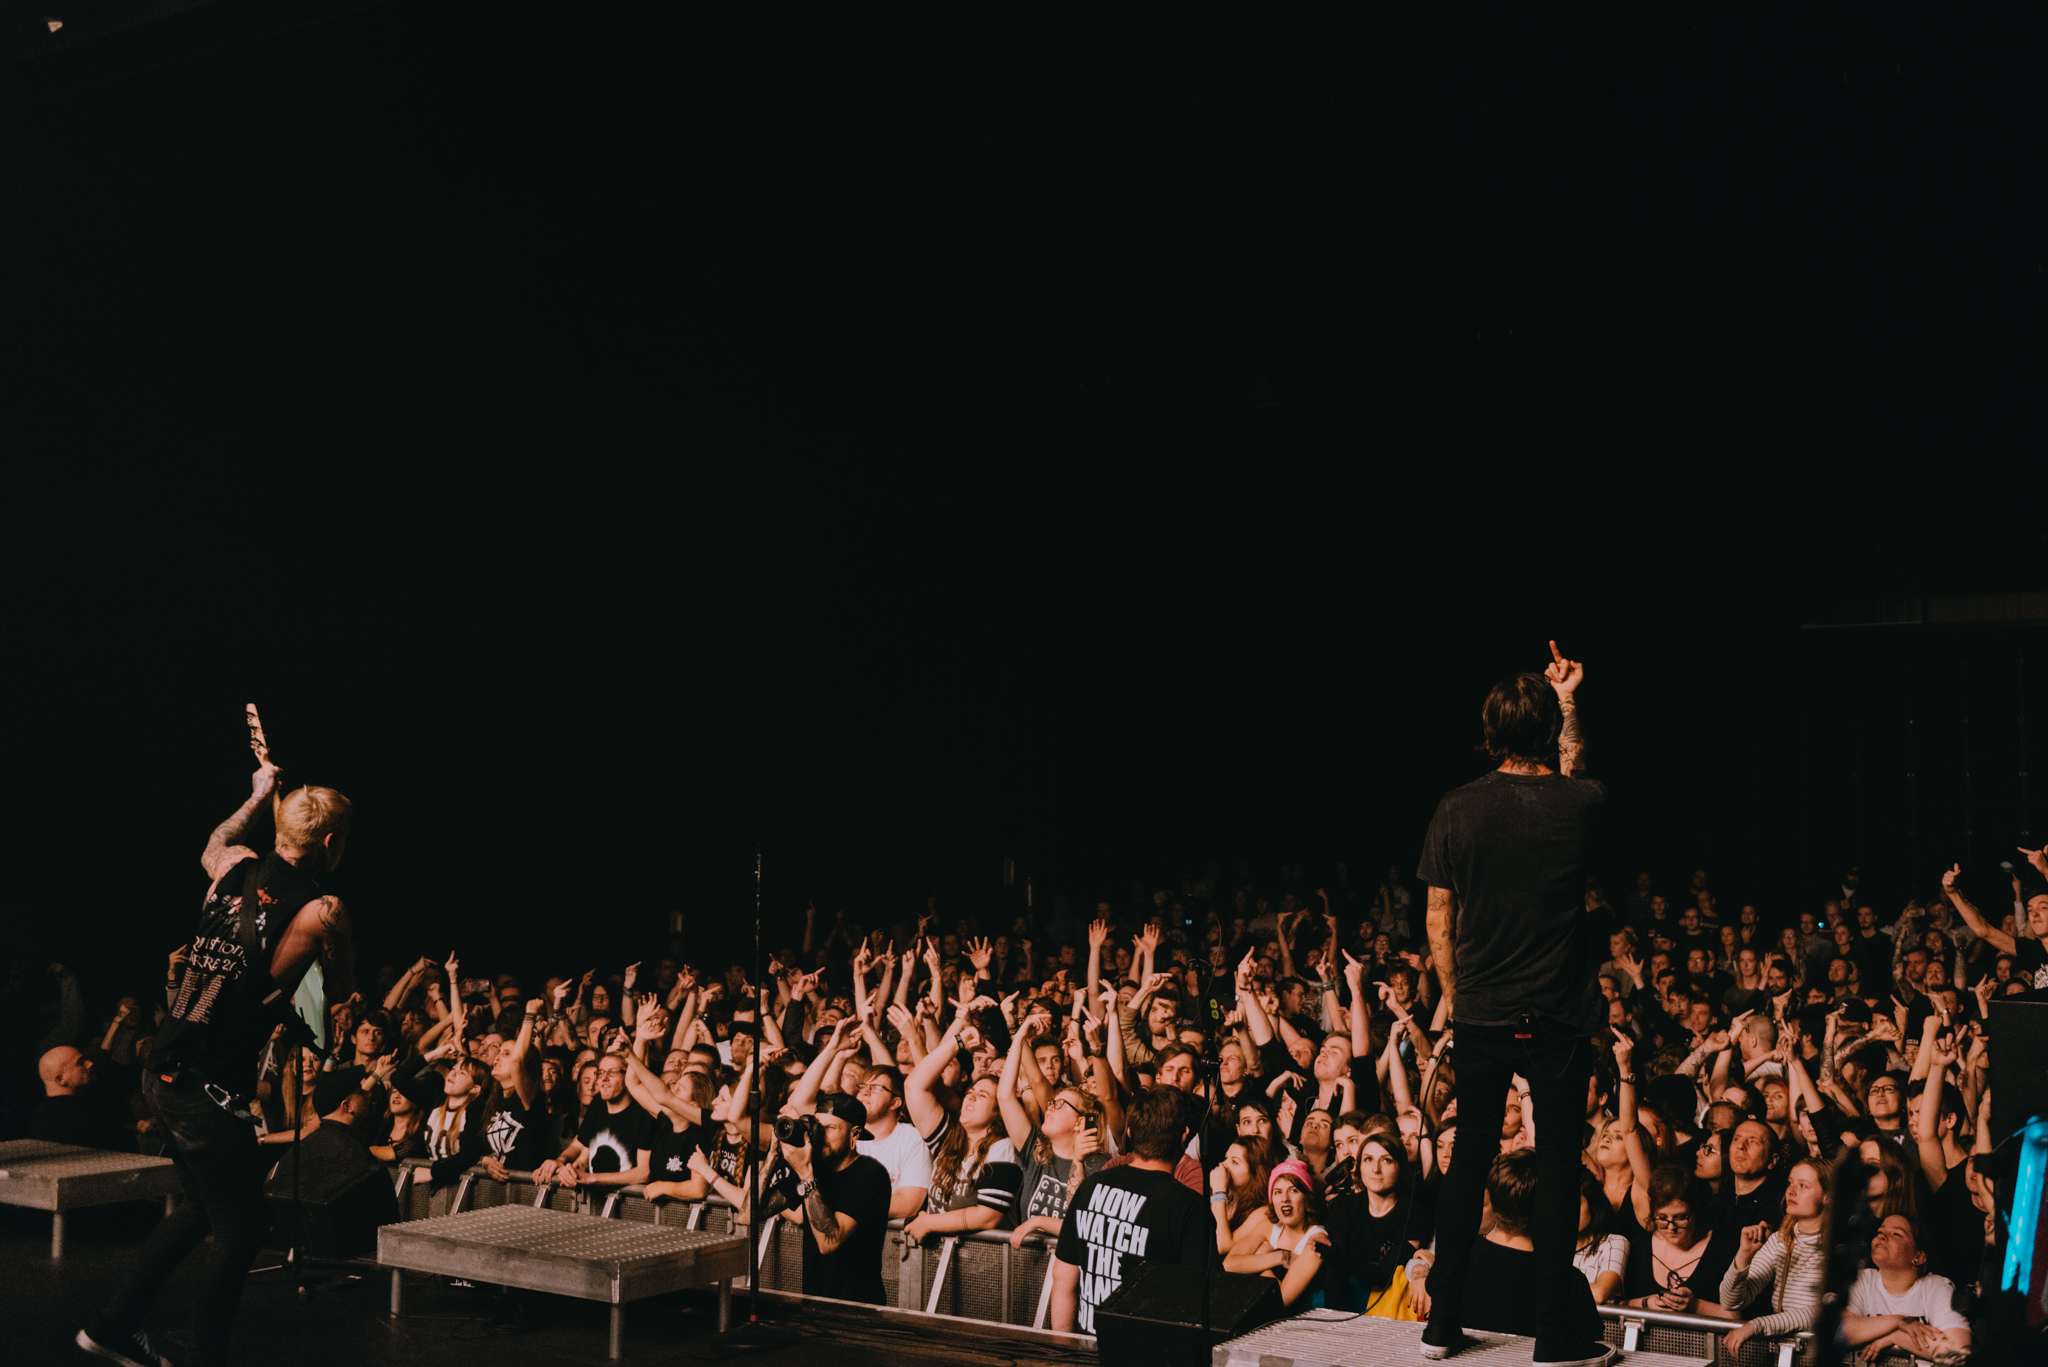 20161202-the amity affliction-2839.jpg